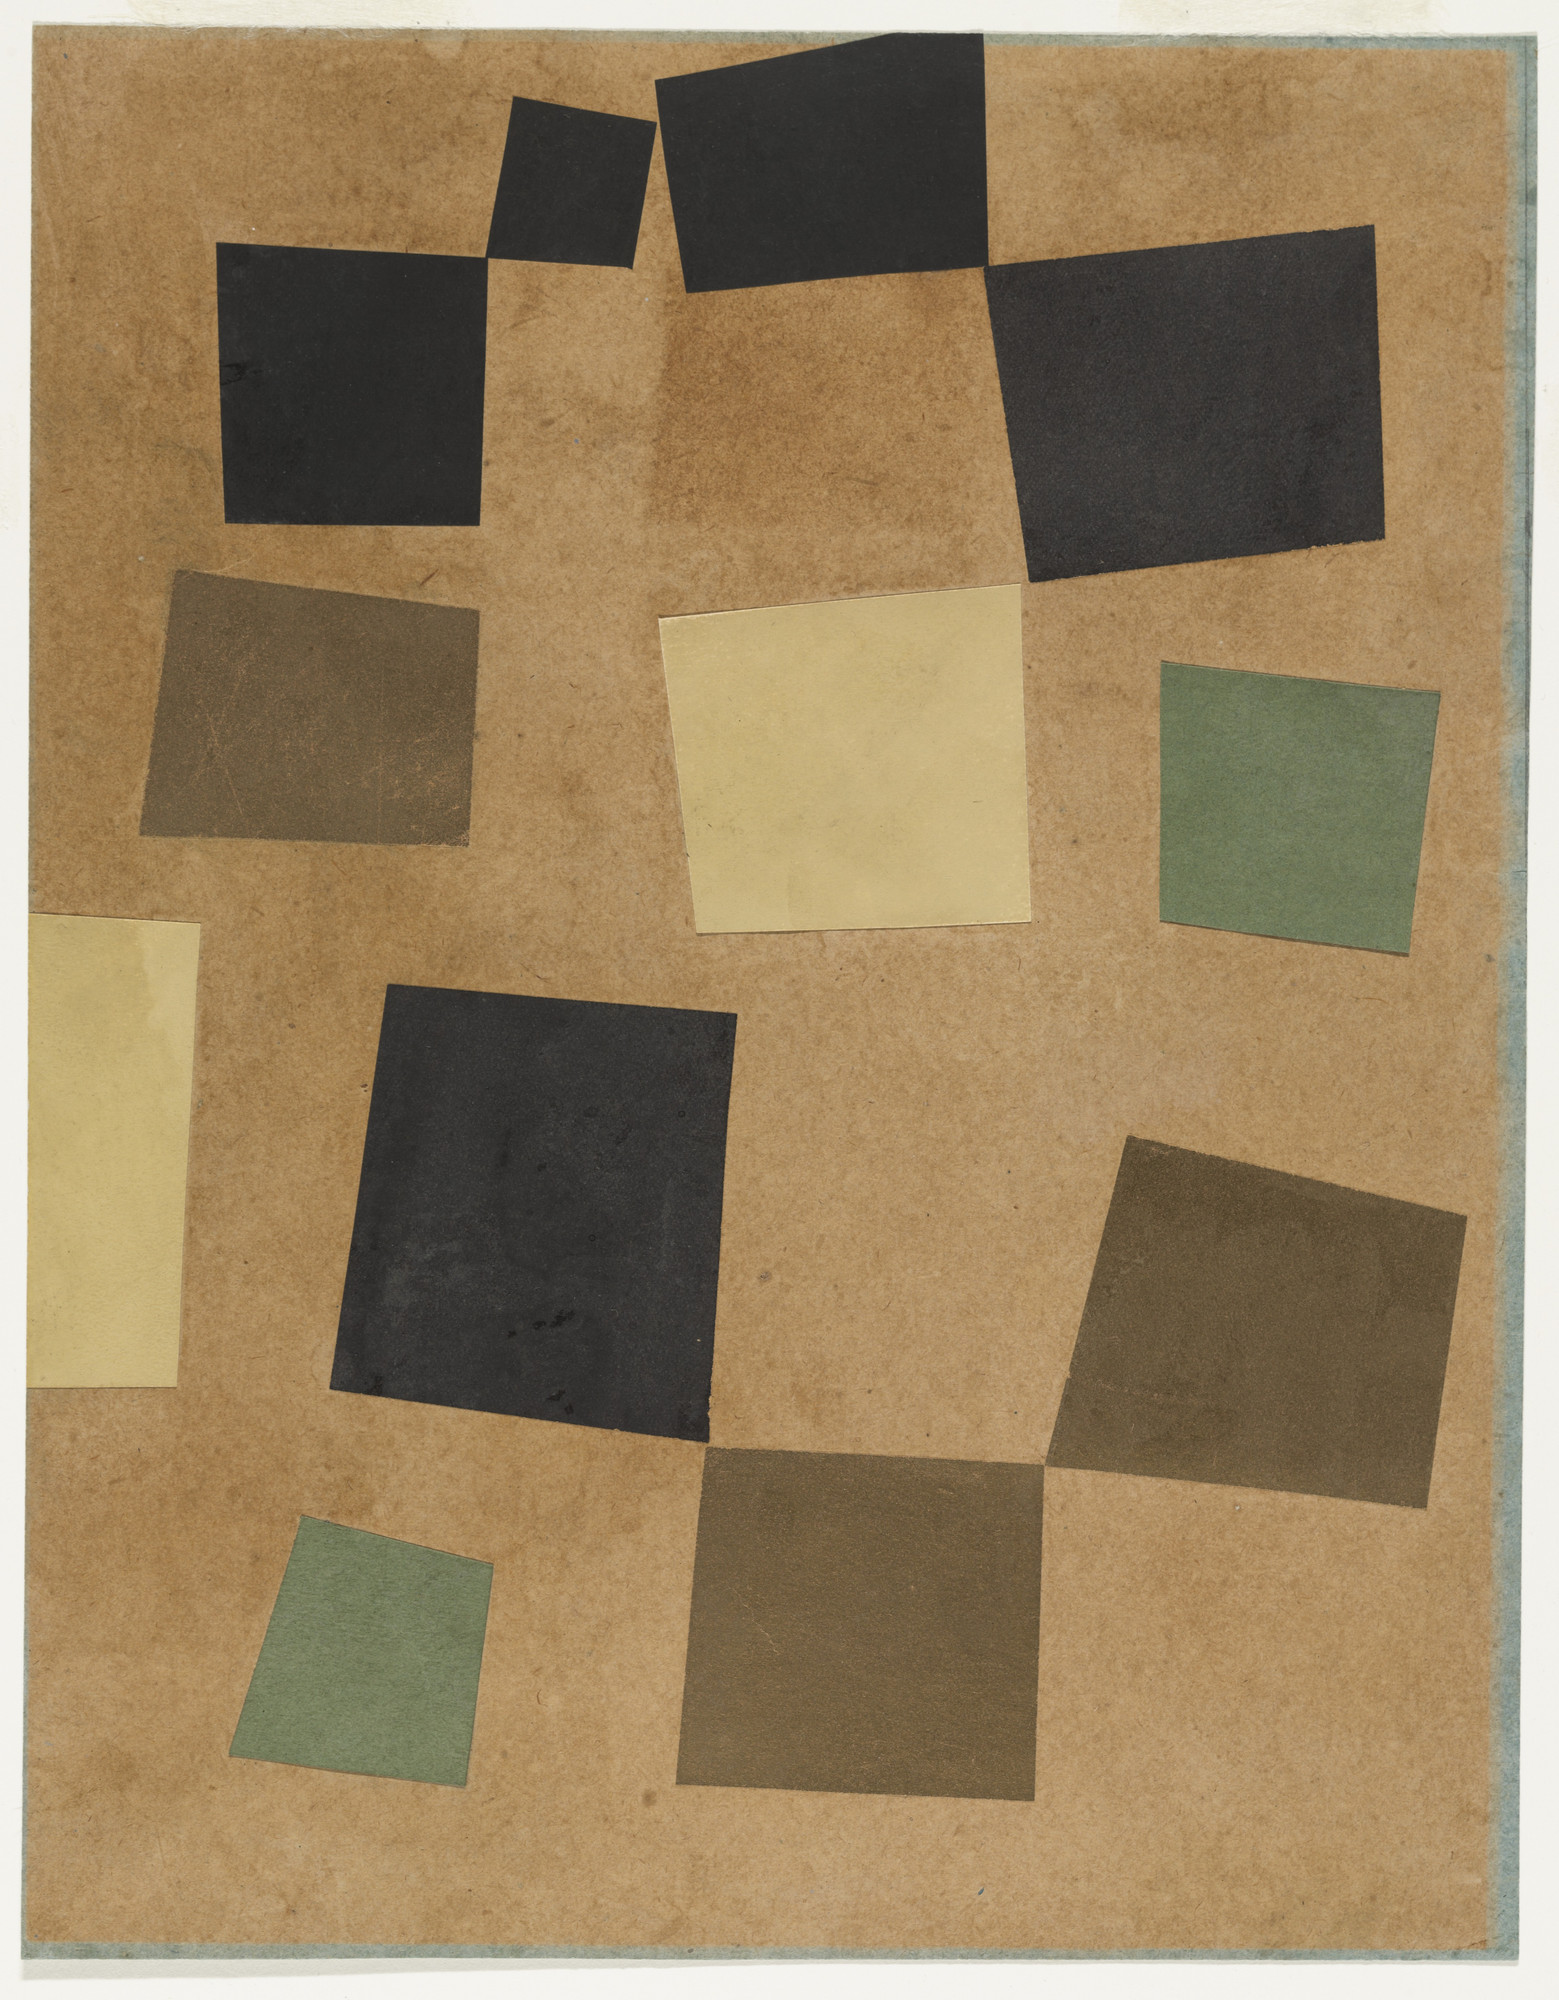 Jean (Hans) Arp. Untitled (Squares Arranged According to the Laws of Chance). 1917